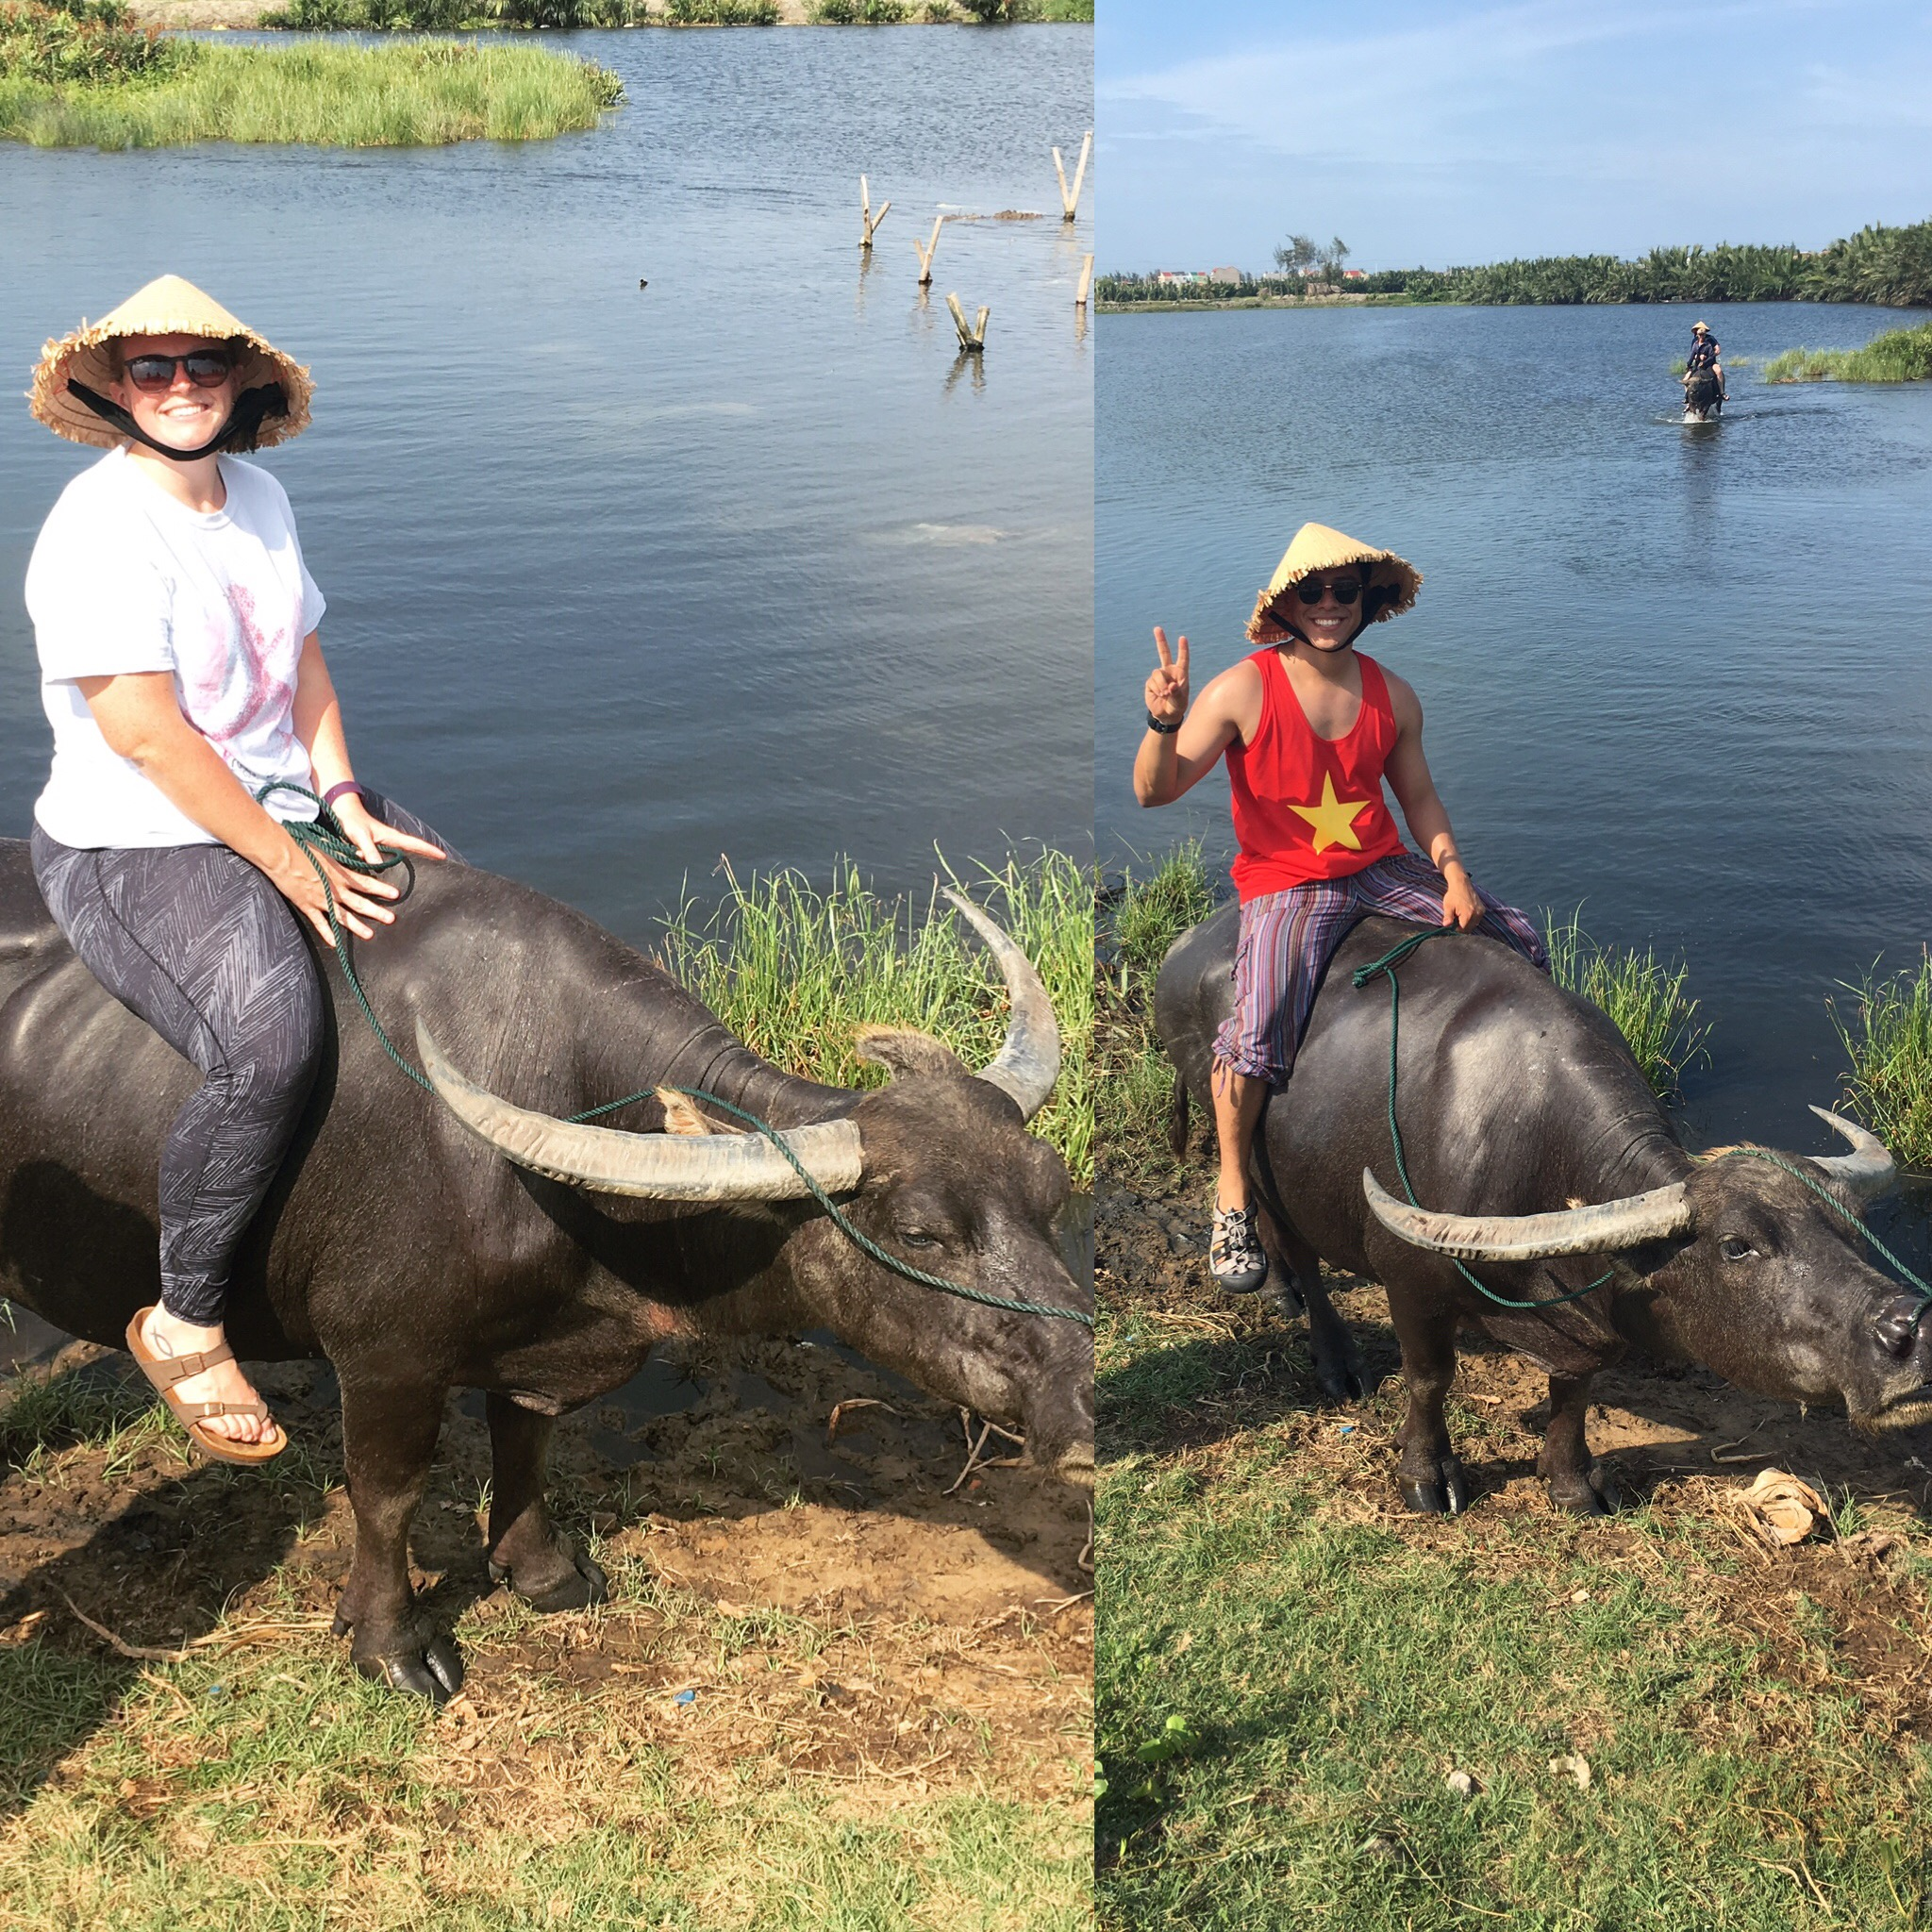 Travel makes you do weird things like: hop on the back of a water buffalo and ride out into the water.